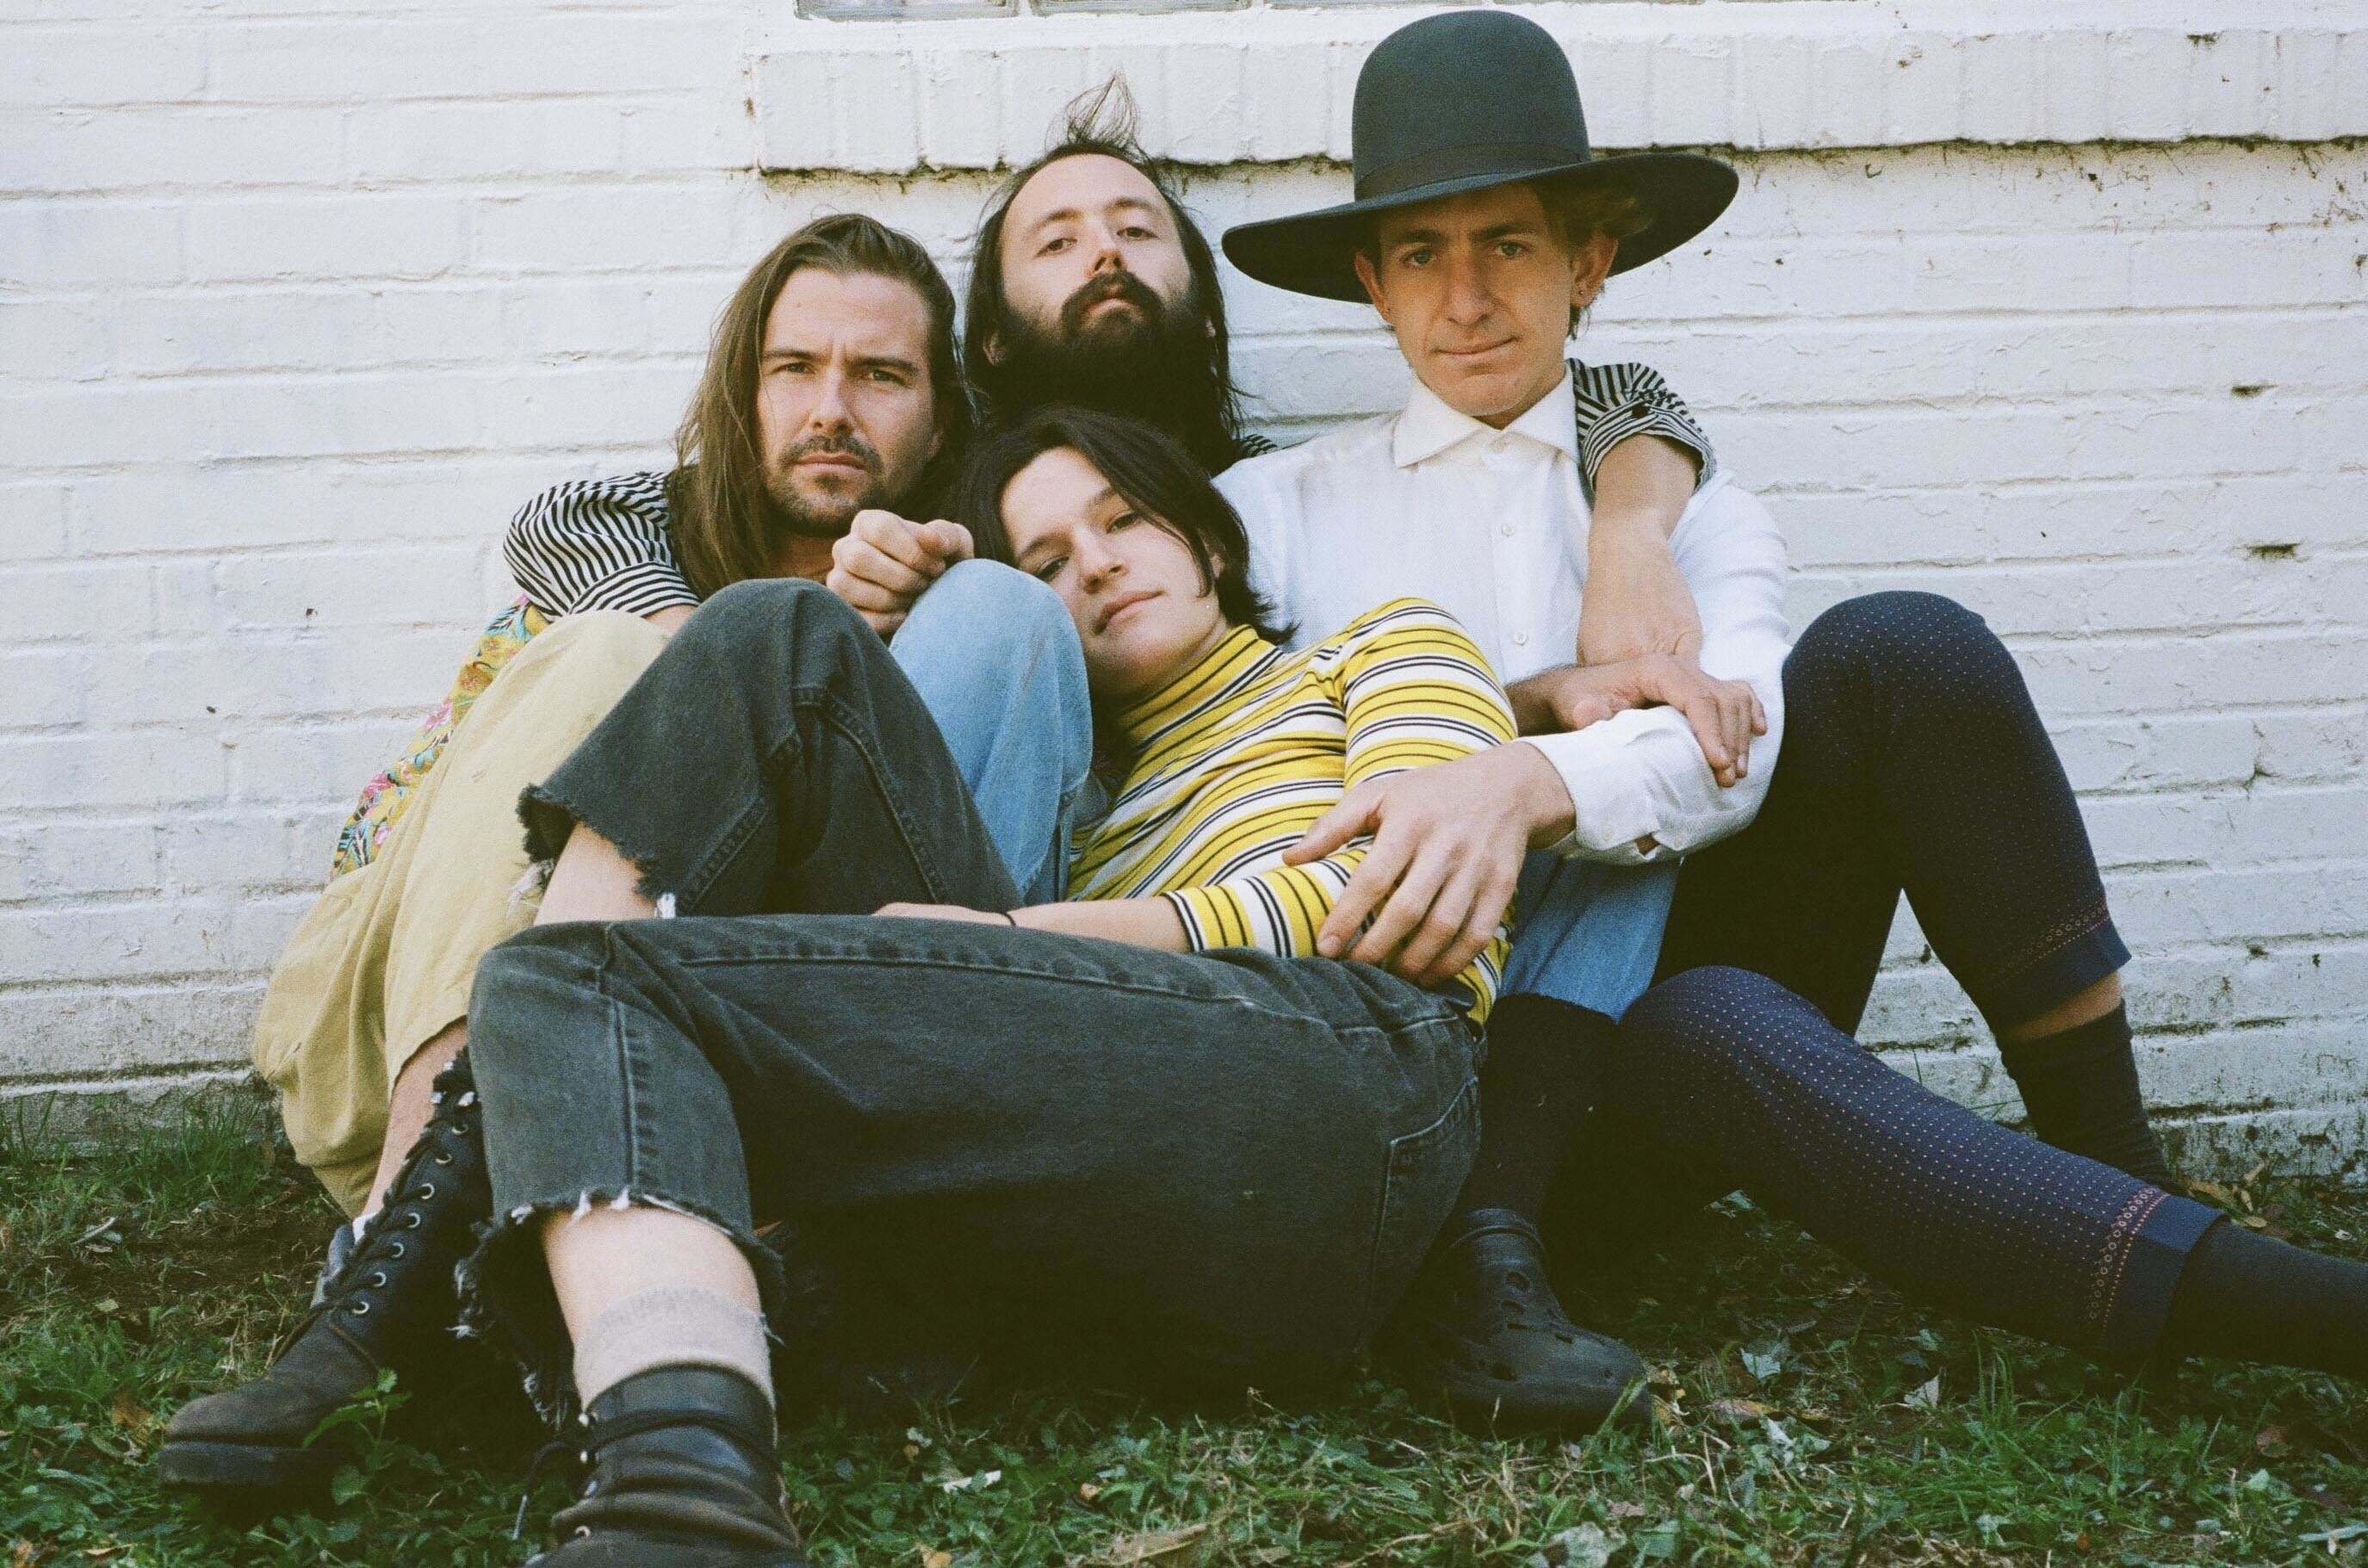 Big Thief announce new album 'Two Hands'